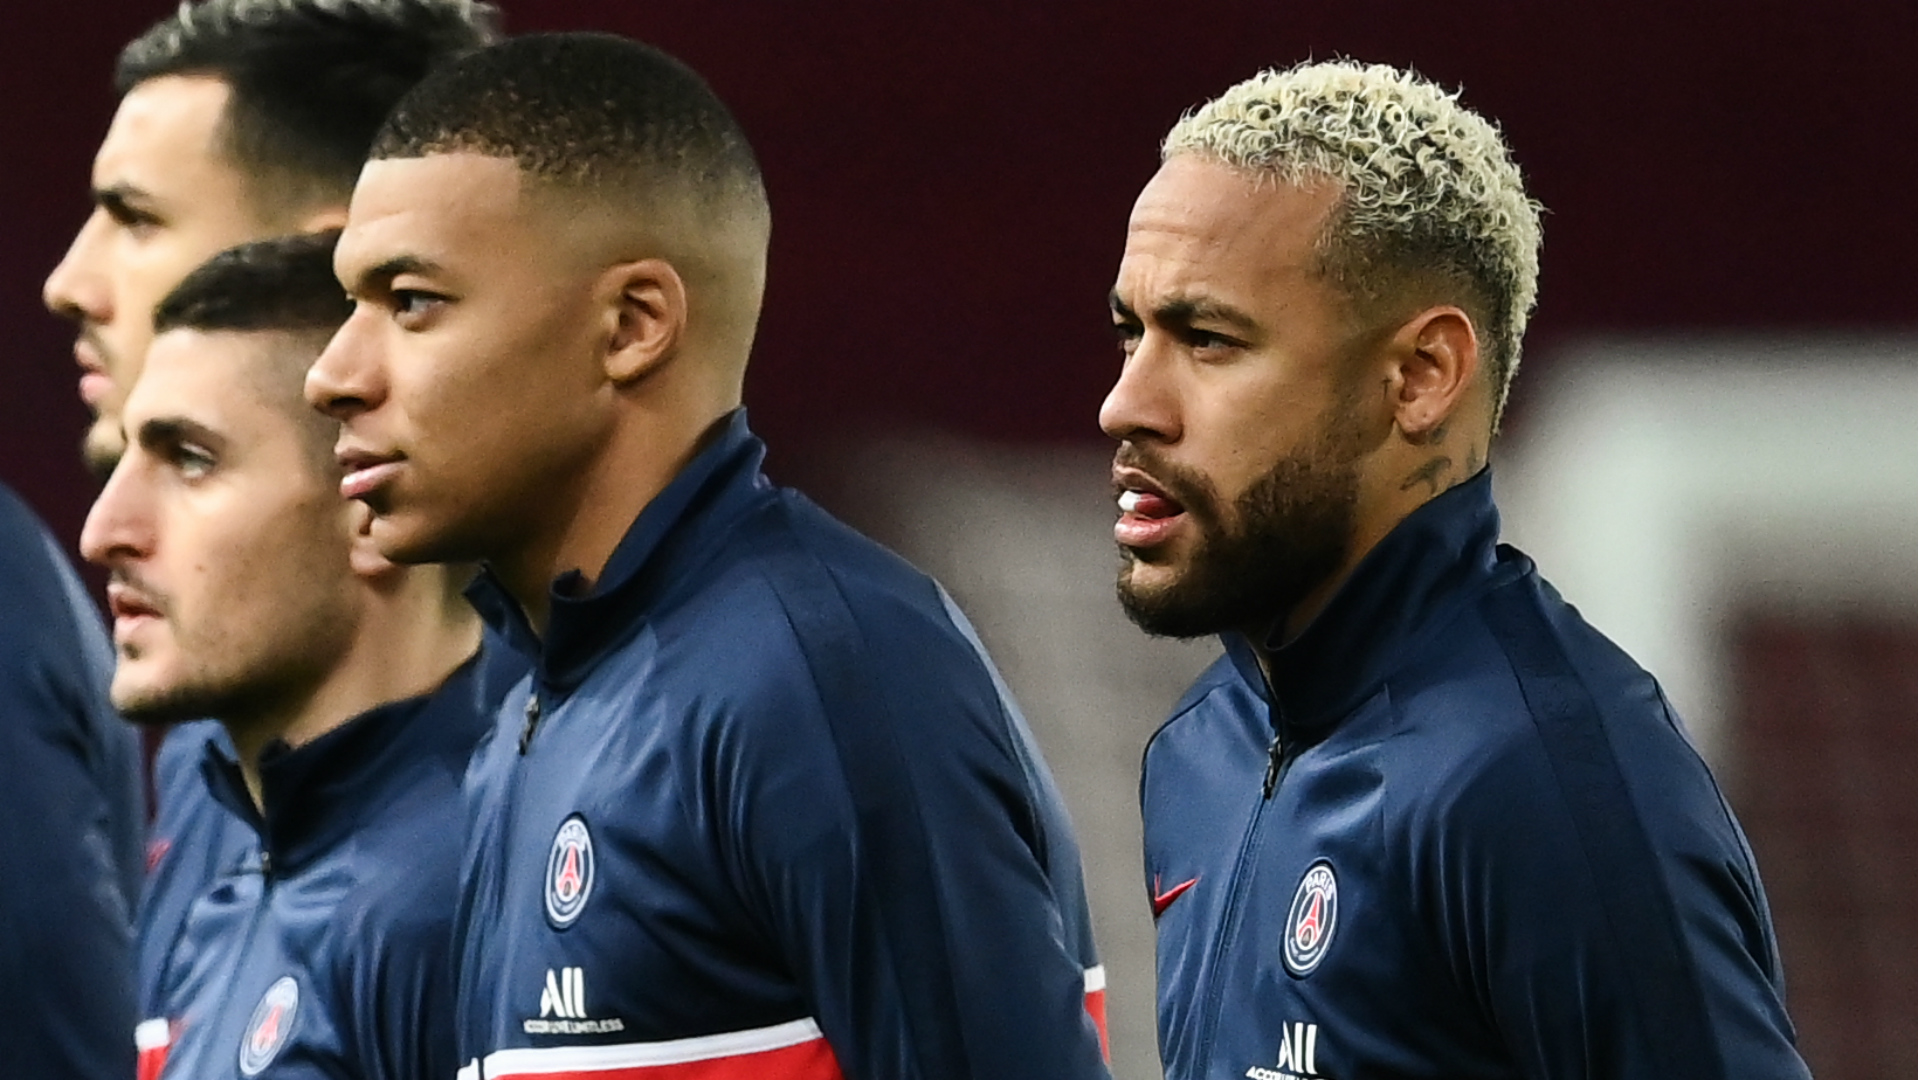 Pochettino after appointment: PSG have some of the world's most talented players